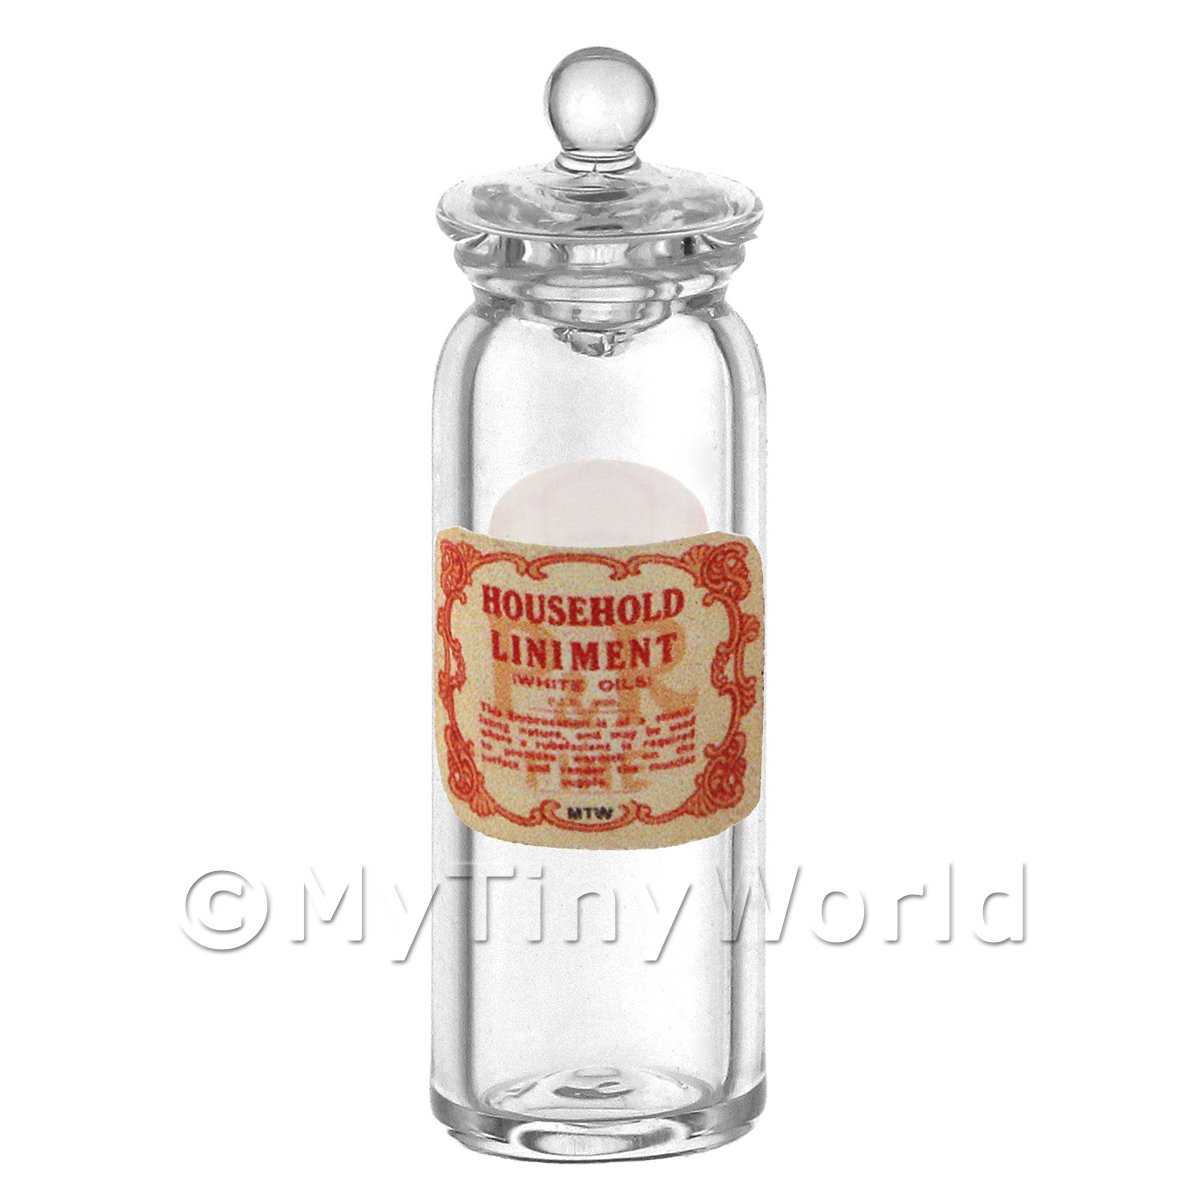 Miniature Household Liniment (White Oil) Glass Apothecary Jar